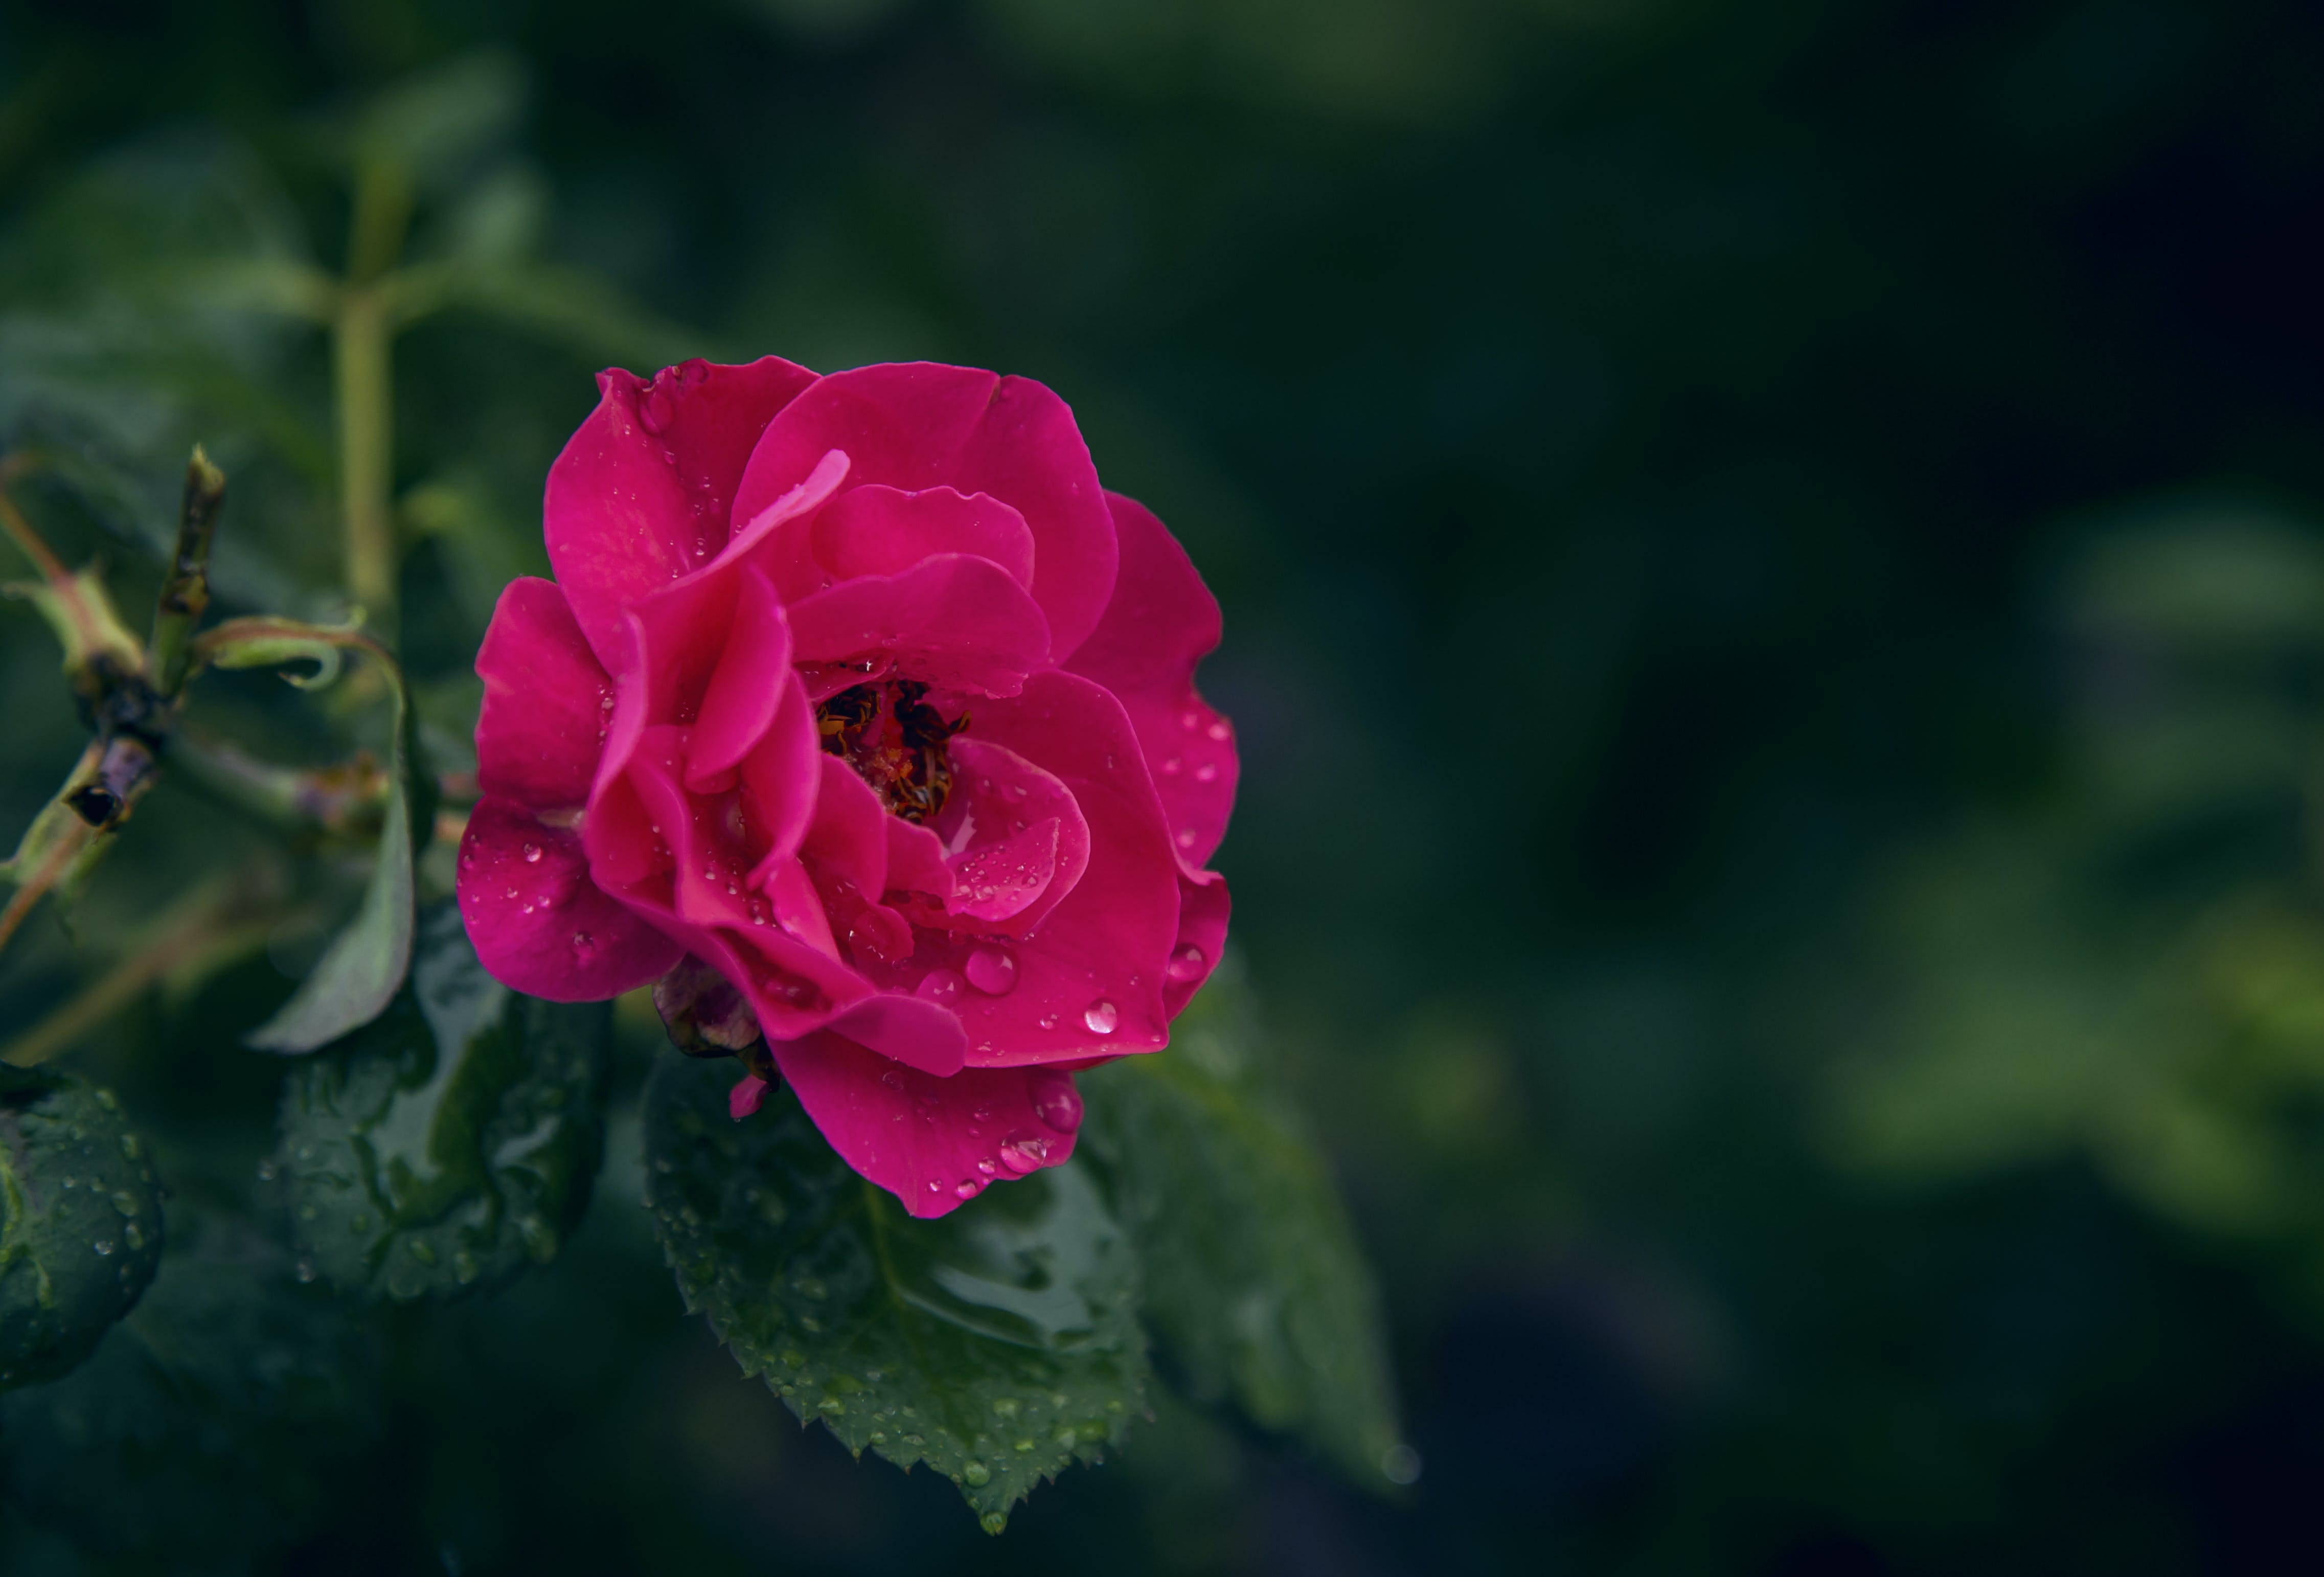 Selective Focus Photography of Pink Rose Flower With Water Droplets